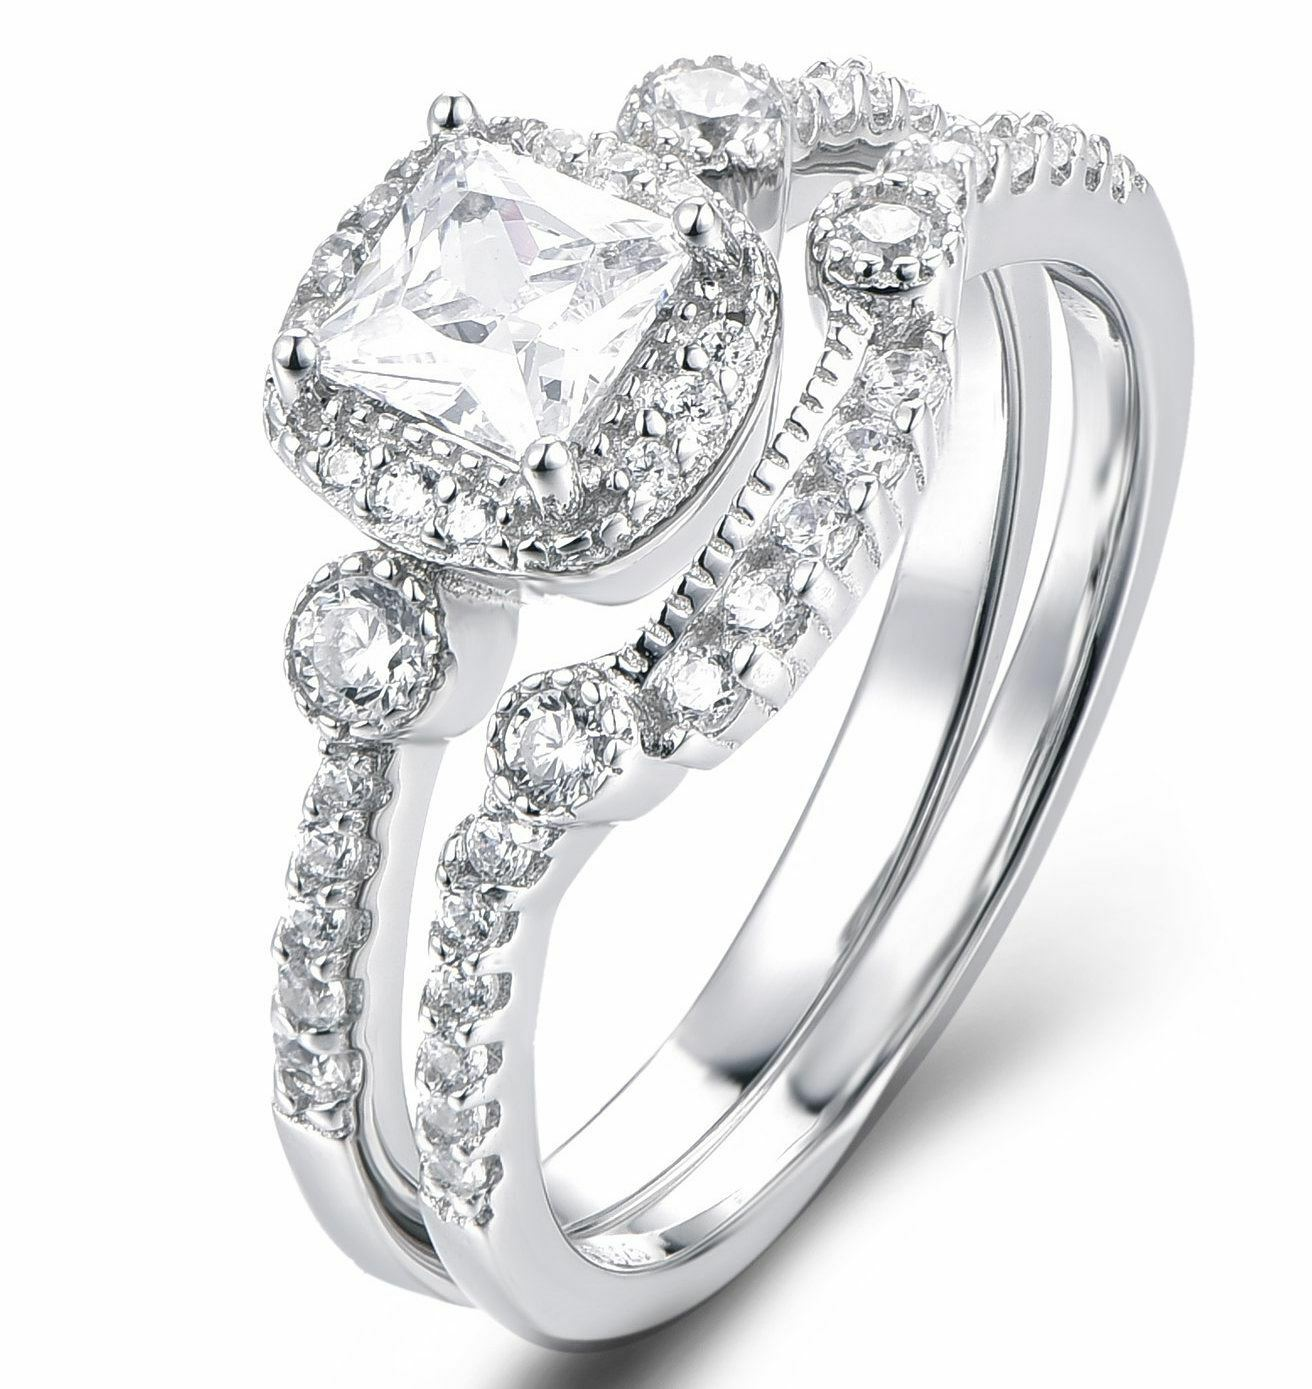 cz wedding band engagement rings set women size 3 12 ss2193 affcart